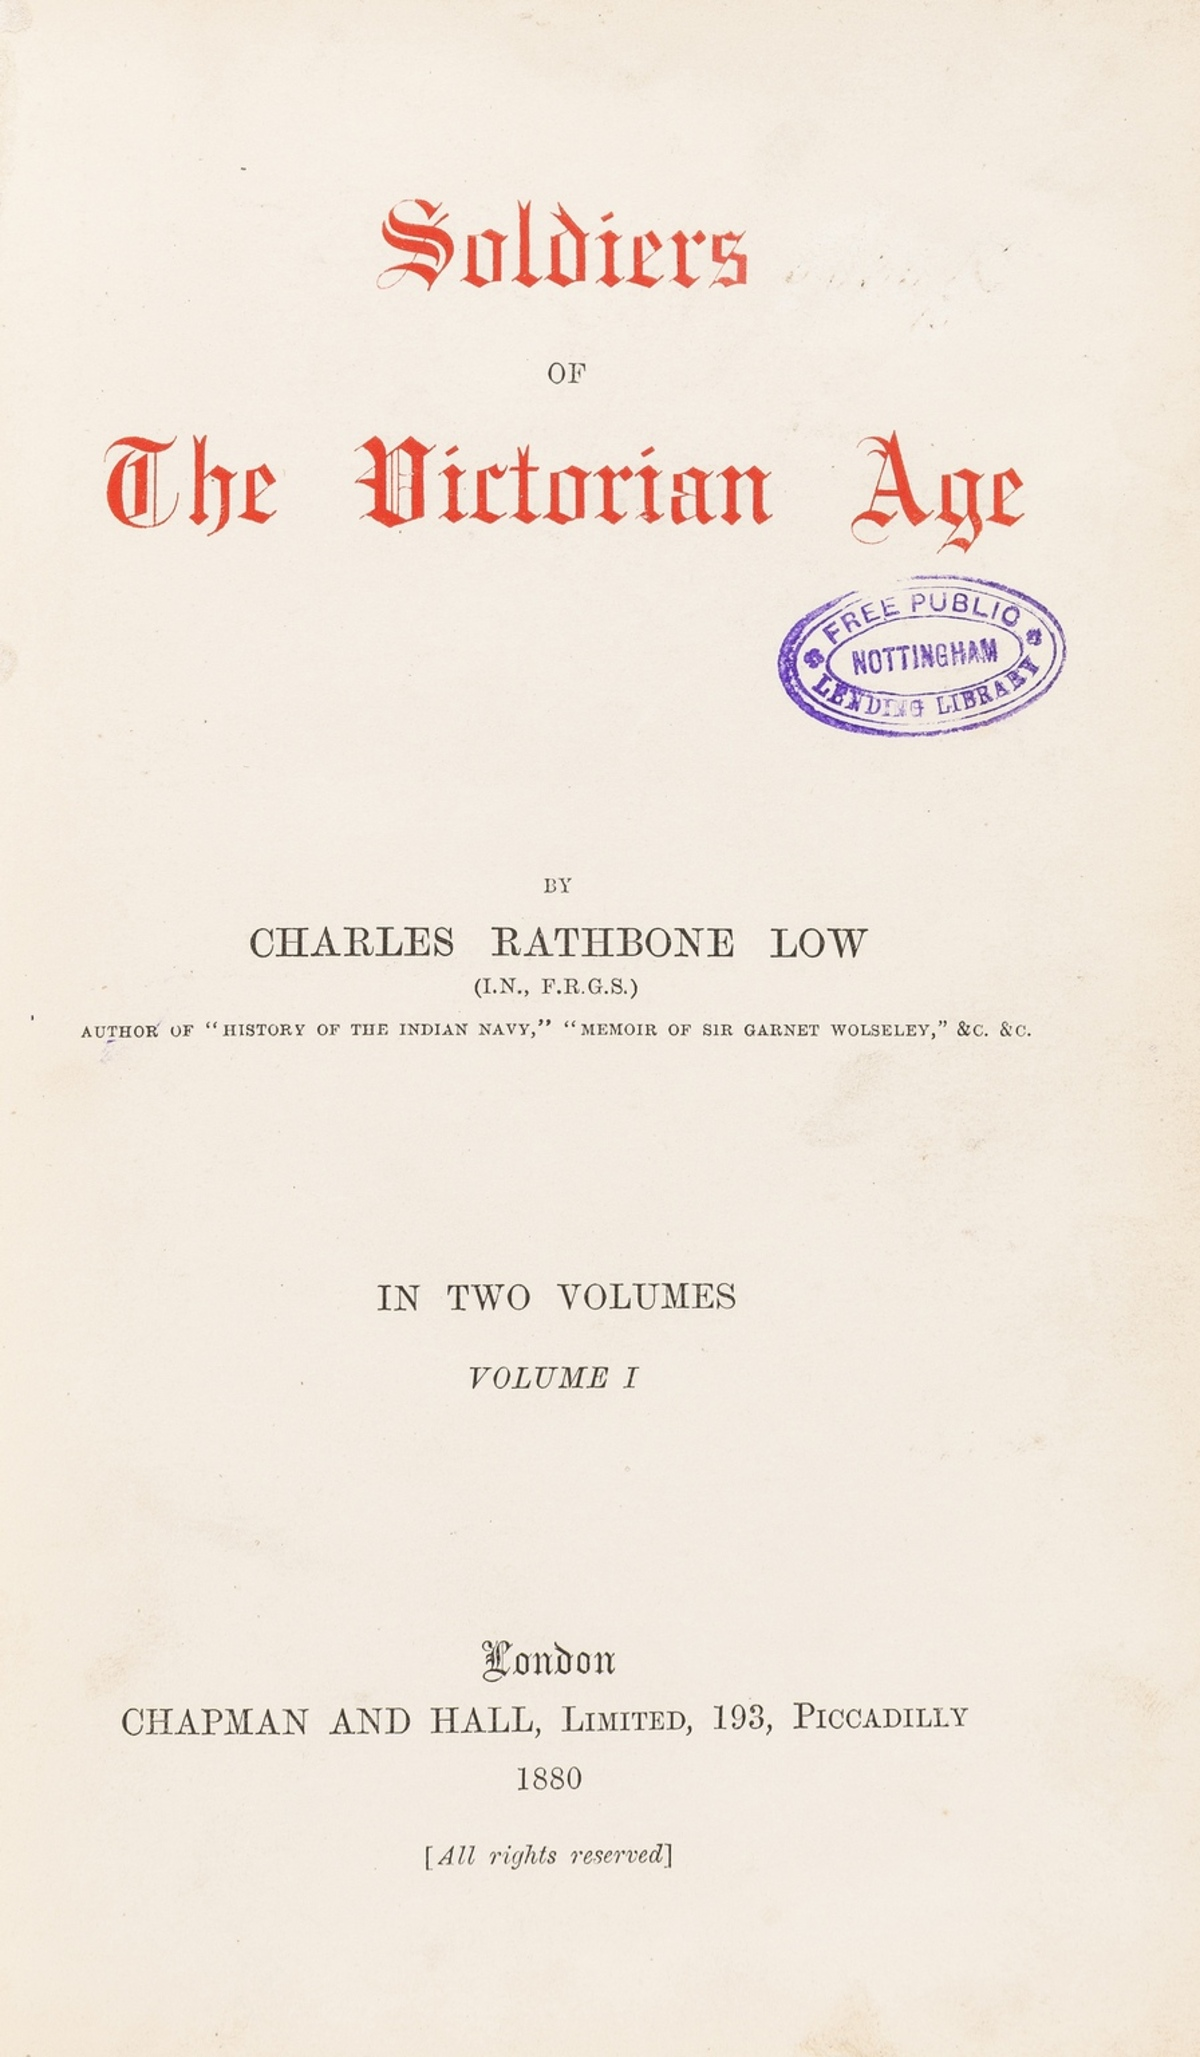 Military.- Low (Charles Rathbone) Soldiers of the Victorian Age, 2 vol., first edition, 1880; and …